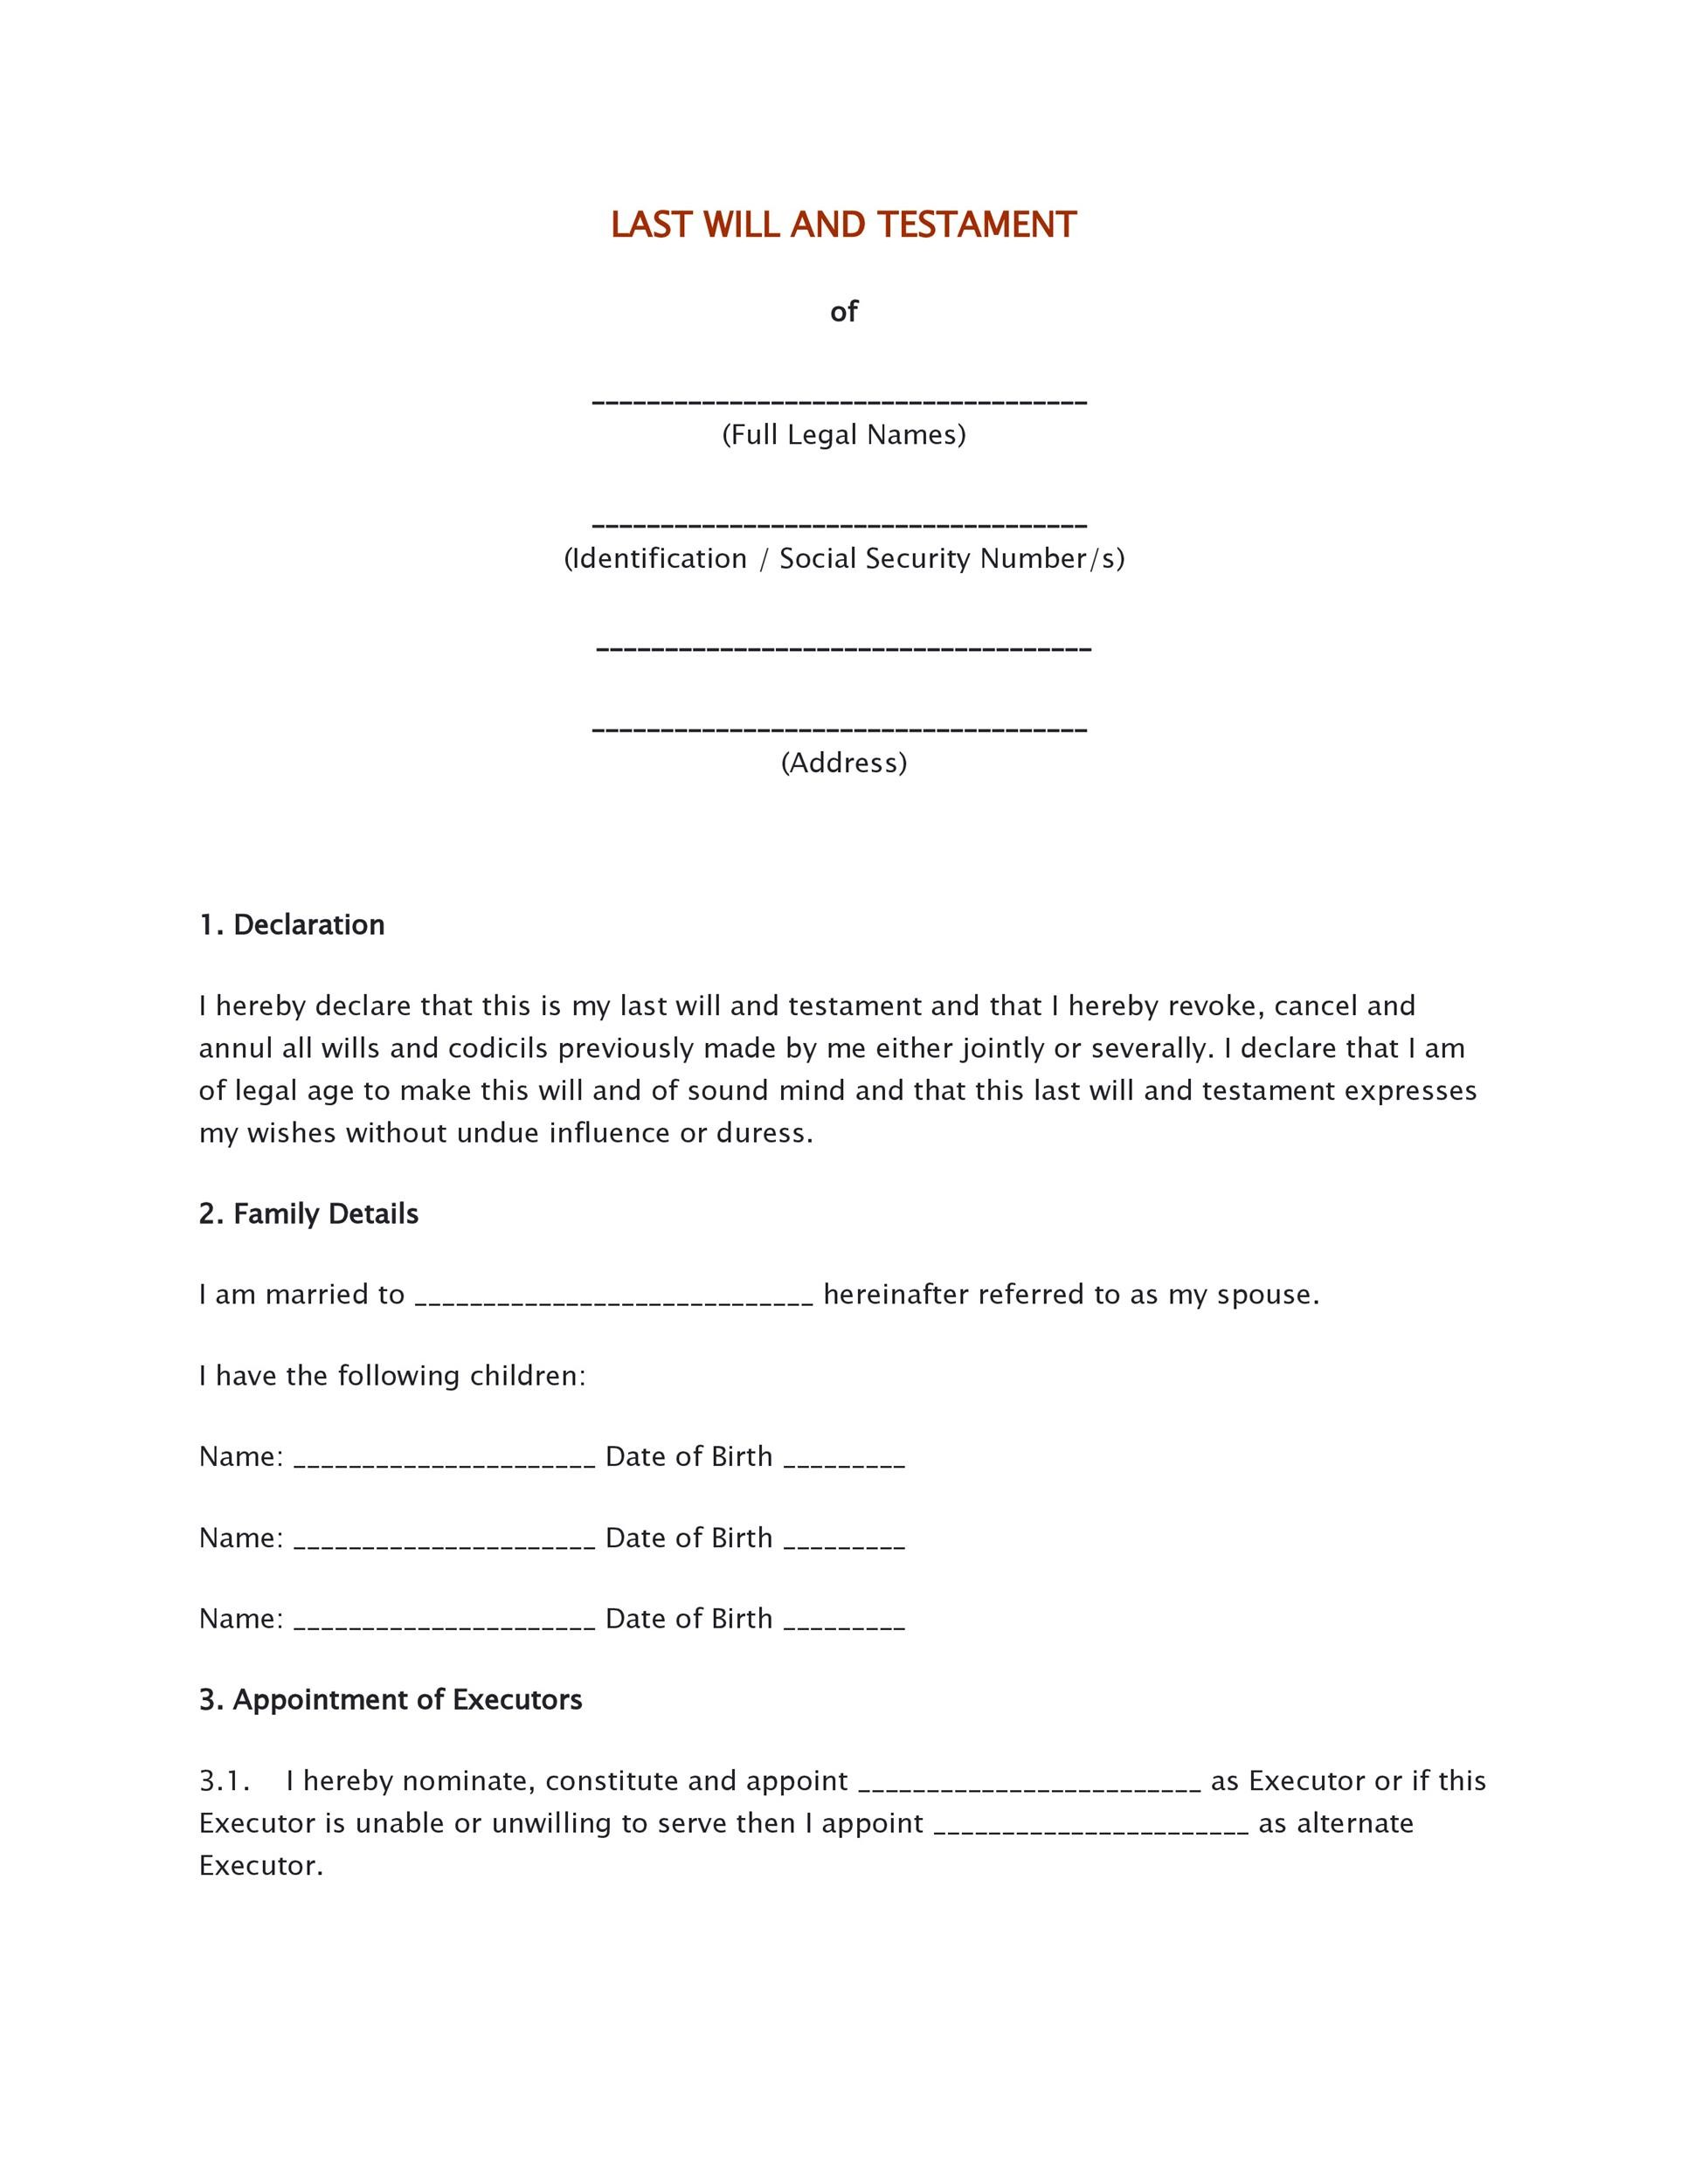 Free Last will and testament template 03